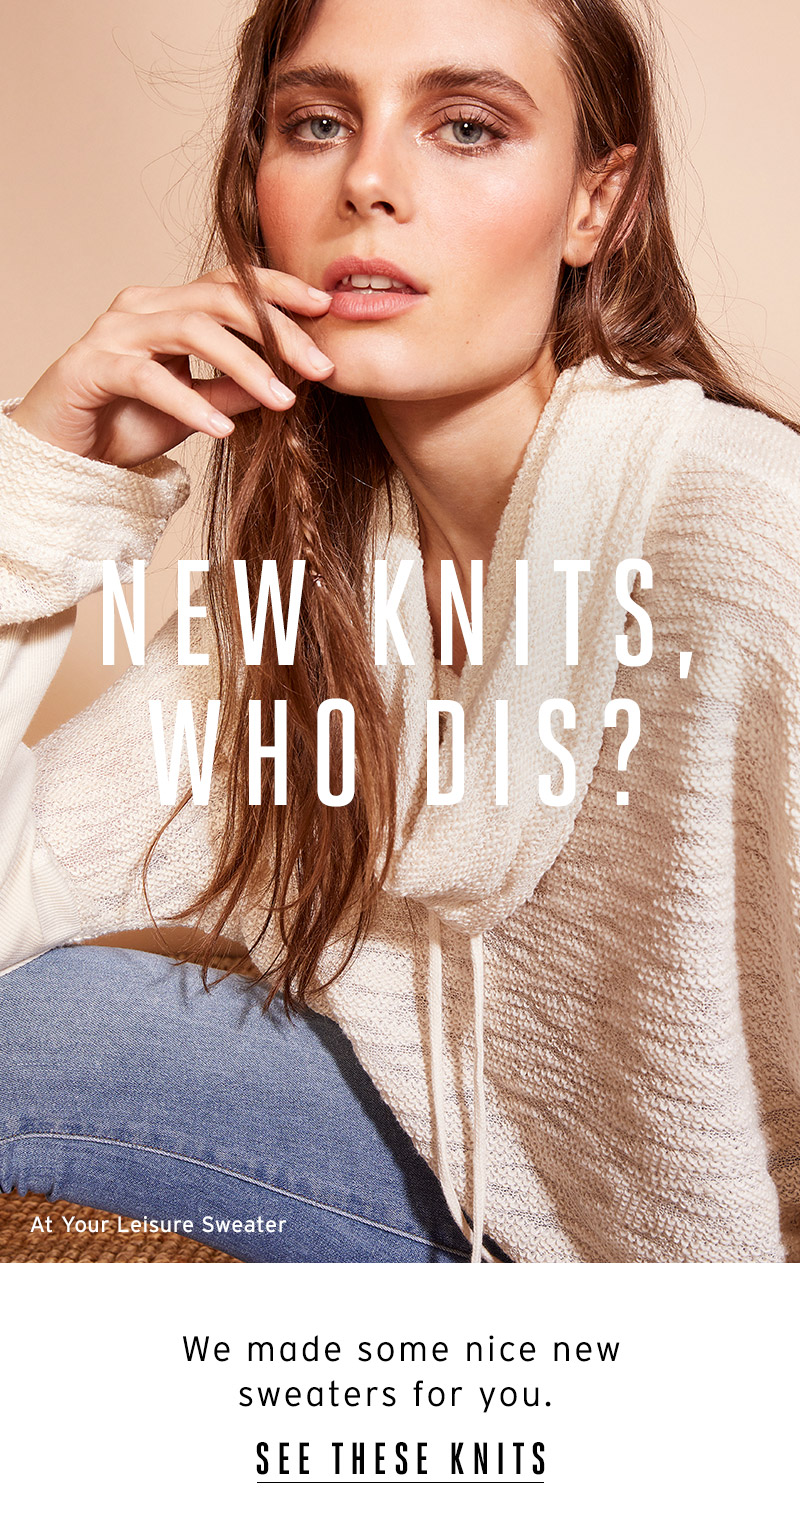 New knits, who dis?